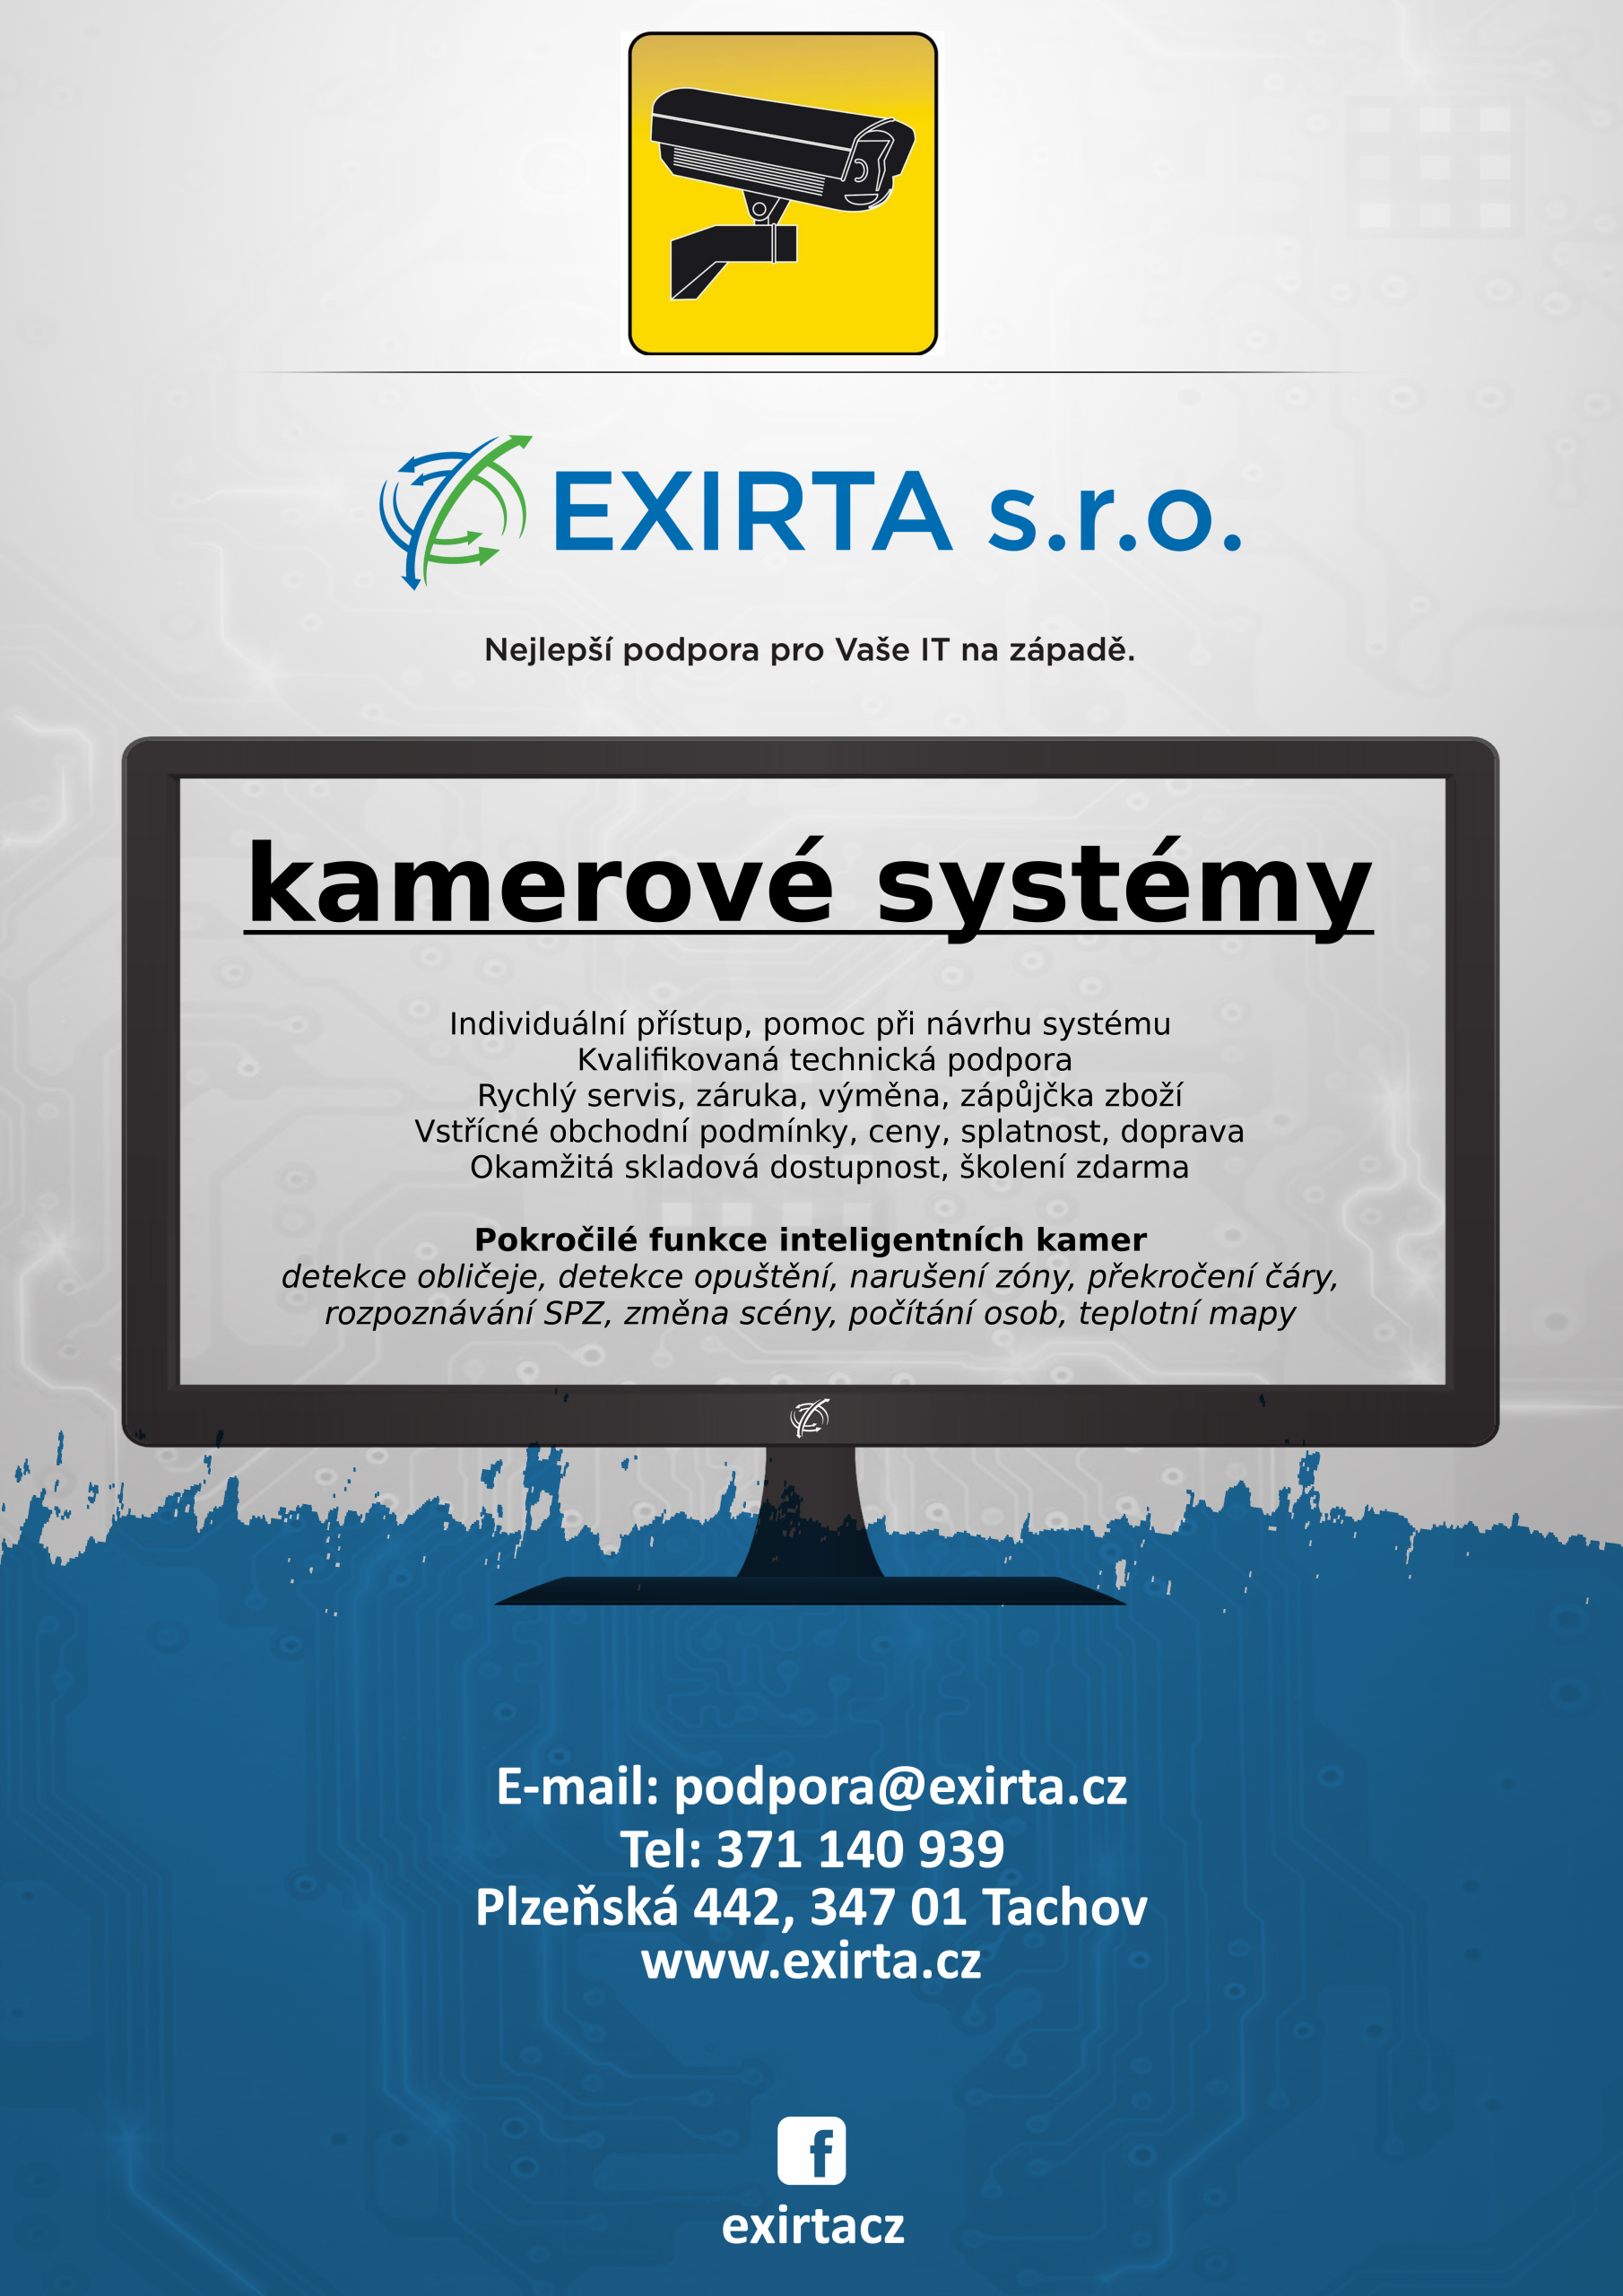 EXIRTA-CCTV-kampan-fb-kamerove-systemy-2019_OUT_2560px